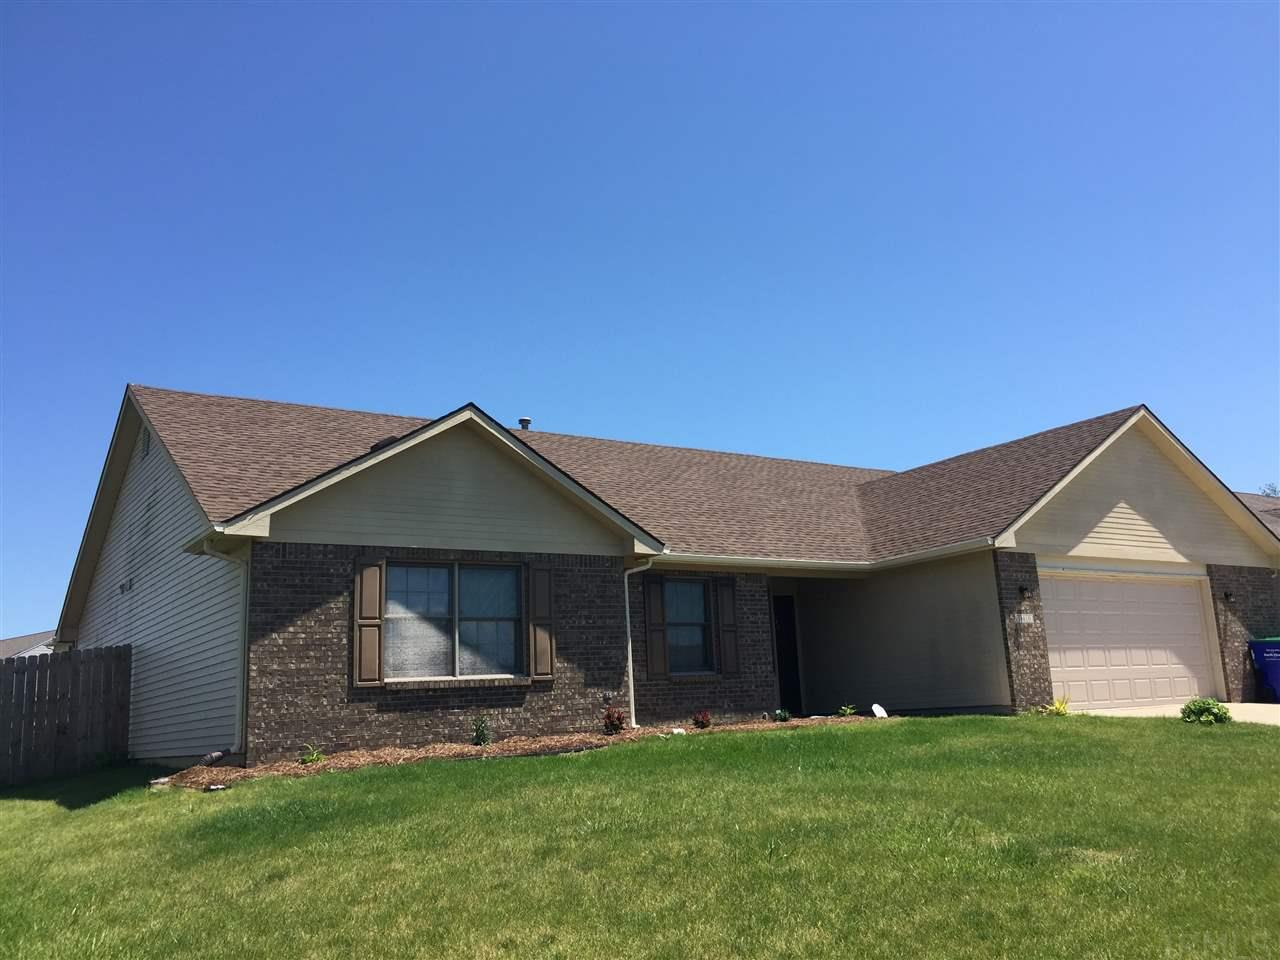 11410 Green Holly, Fort Wayne, IN 46845